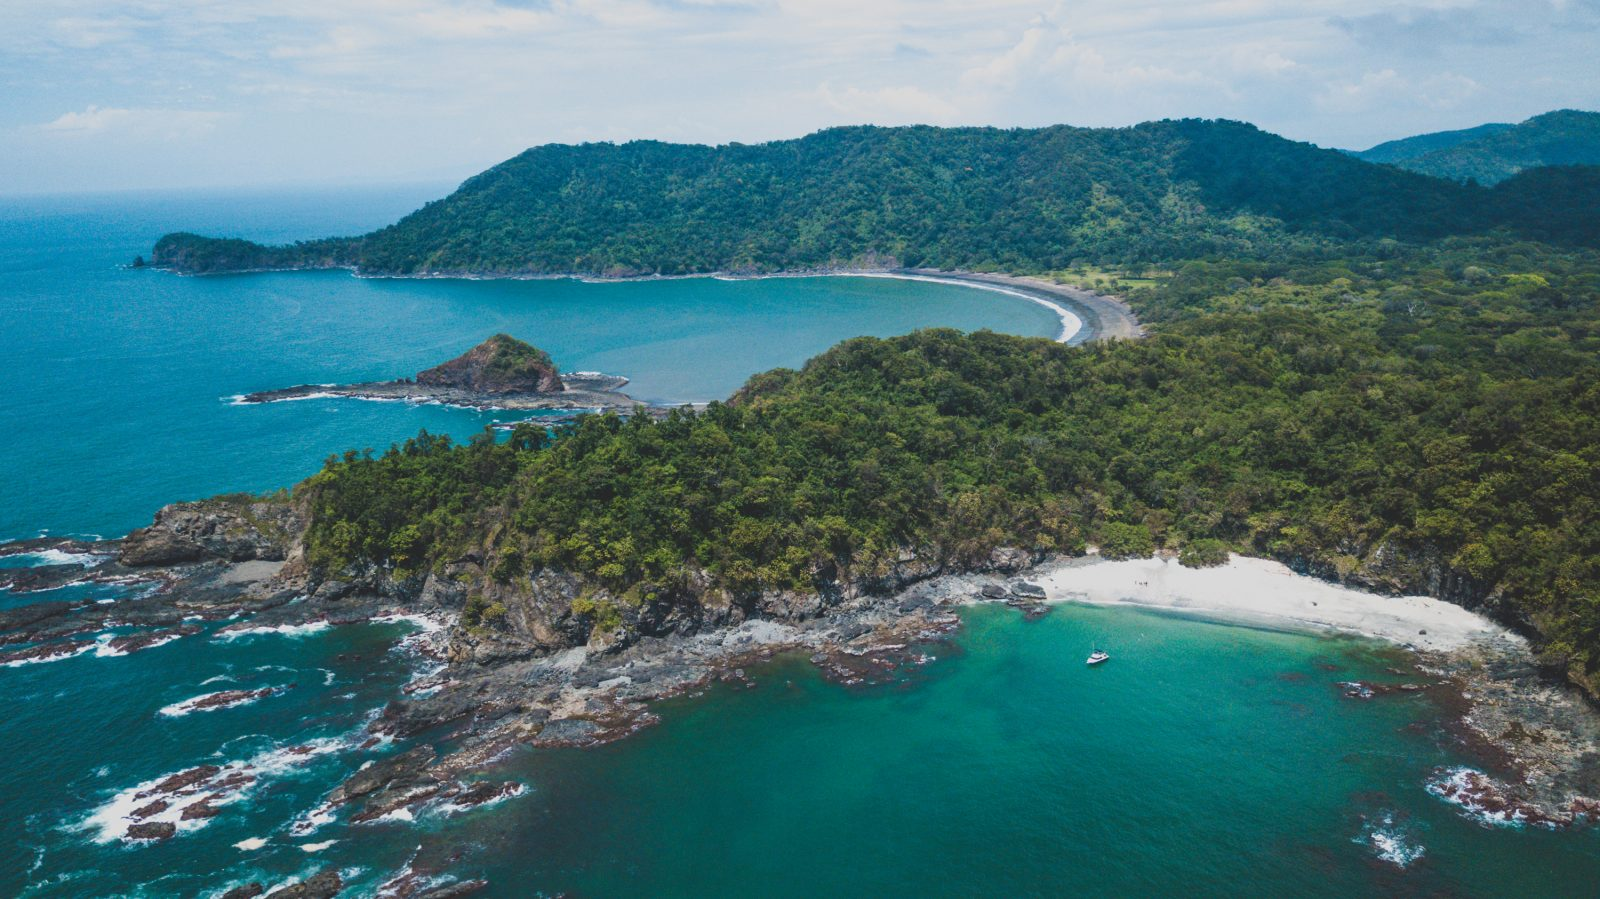 What to see at the Best Beaches in Guanacaste, Playa Flamingo